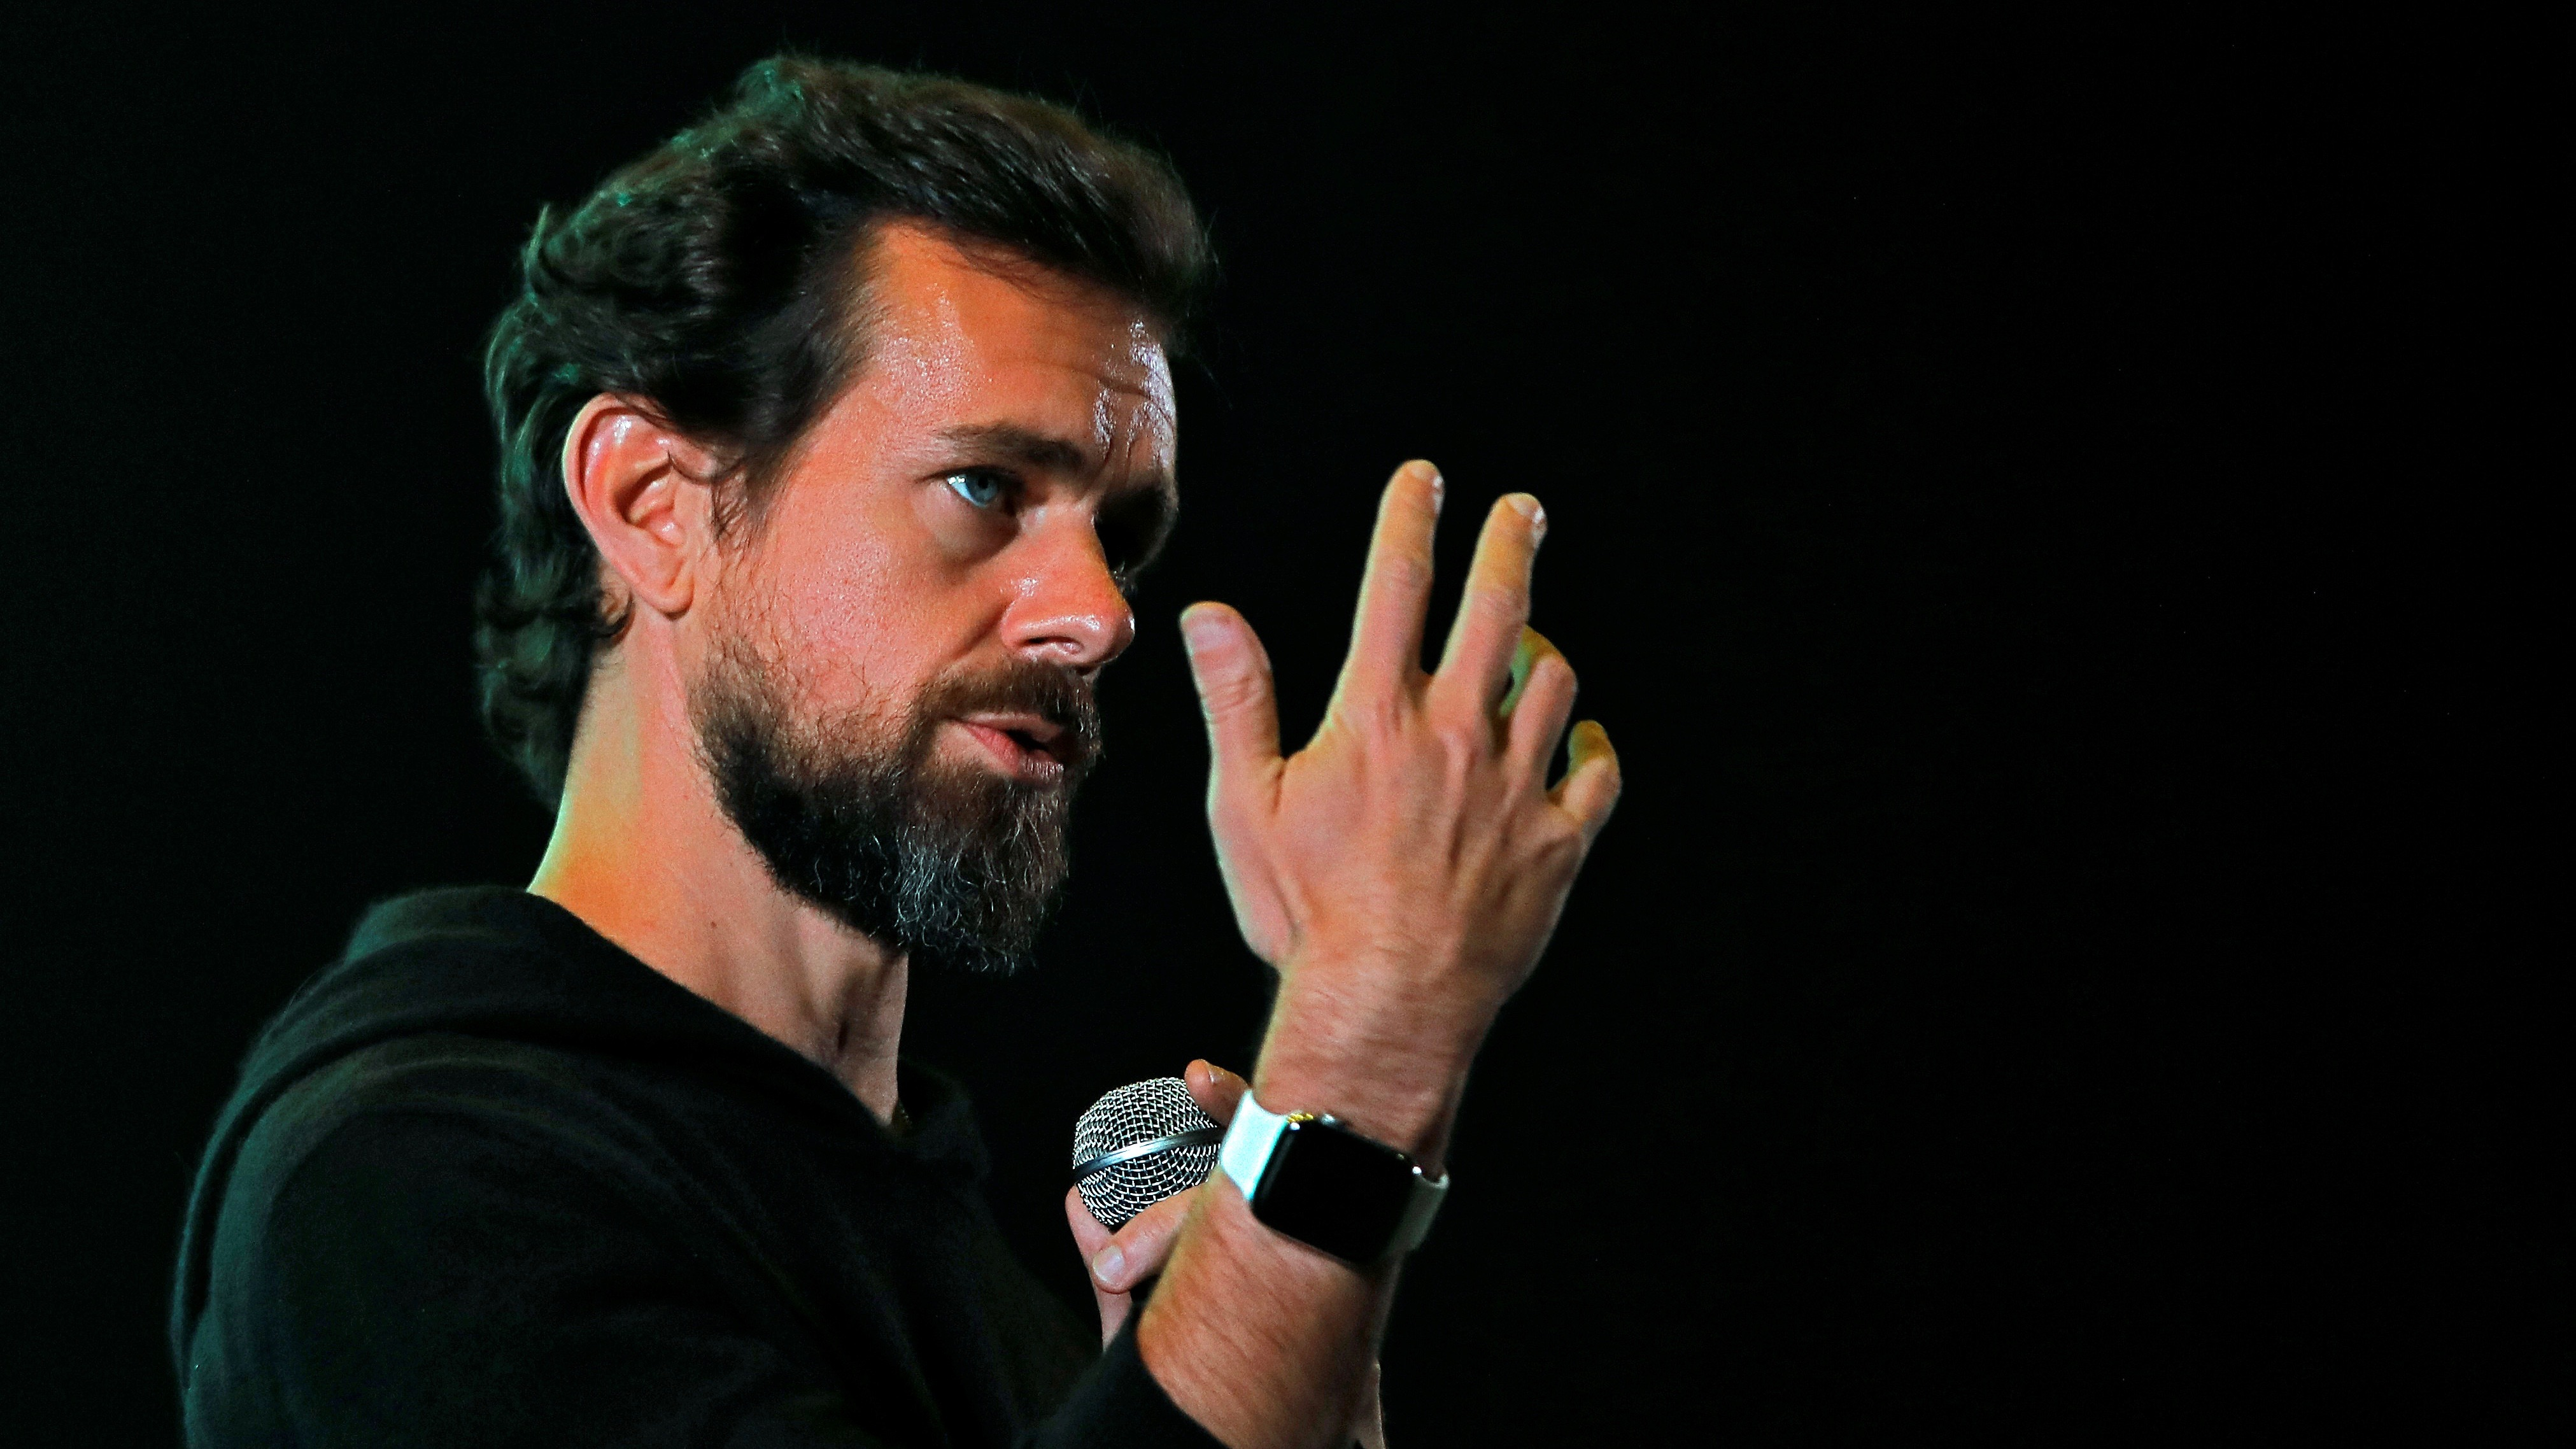 Twitter CEO Jack Dorsey is attached to his Apple watch.